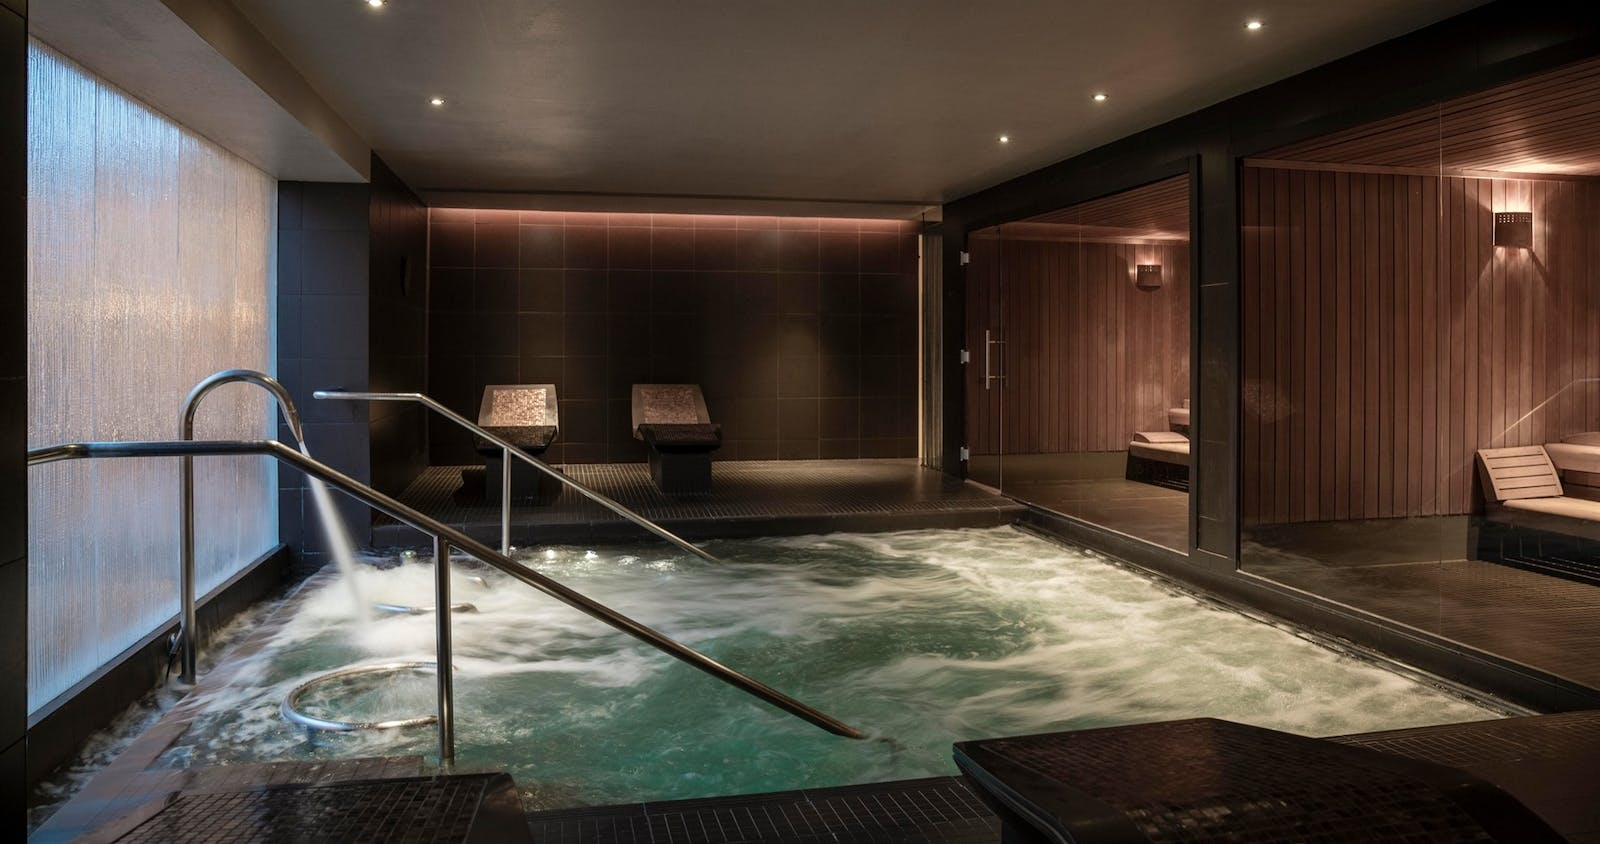 Spa at The Gleneagles Hotel, Scotland, UK